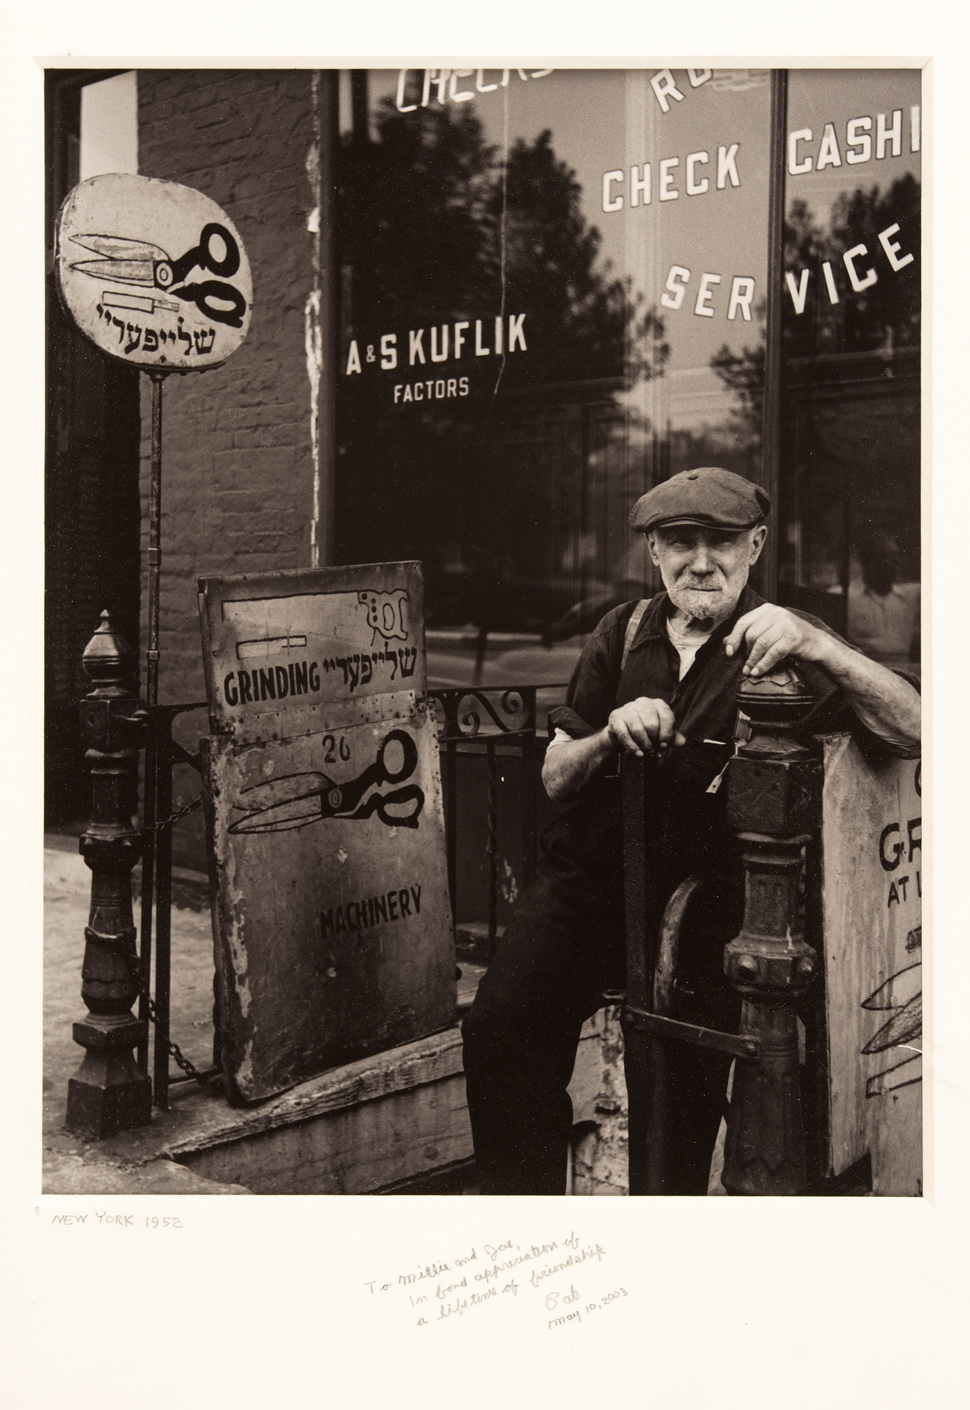 "Man In Front of Machinery Shop 16"" x 20"" (from Joe Lasker's personal collection)"